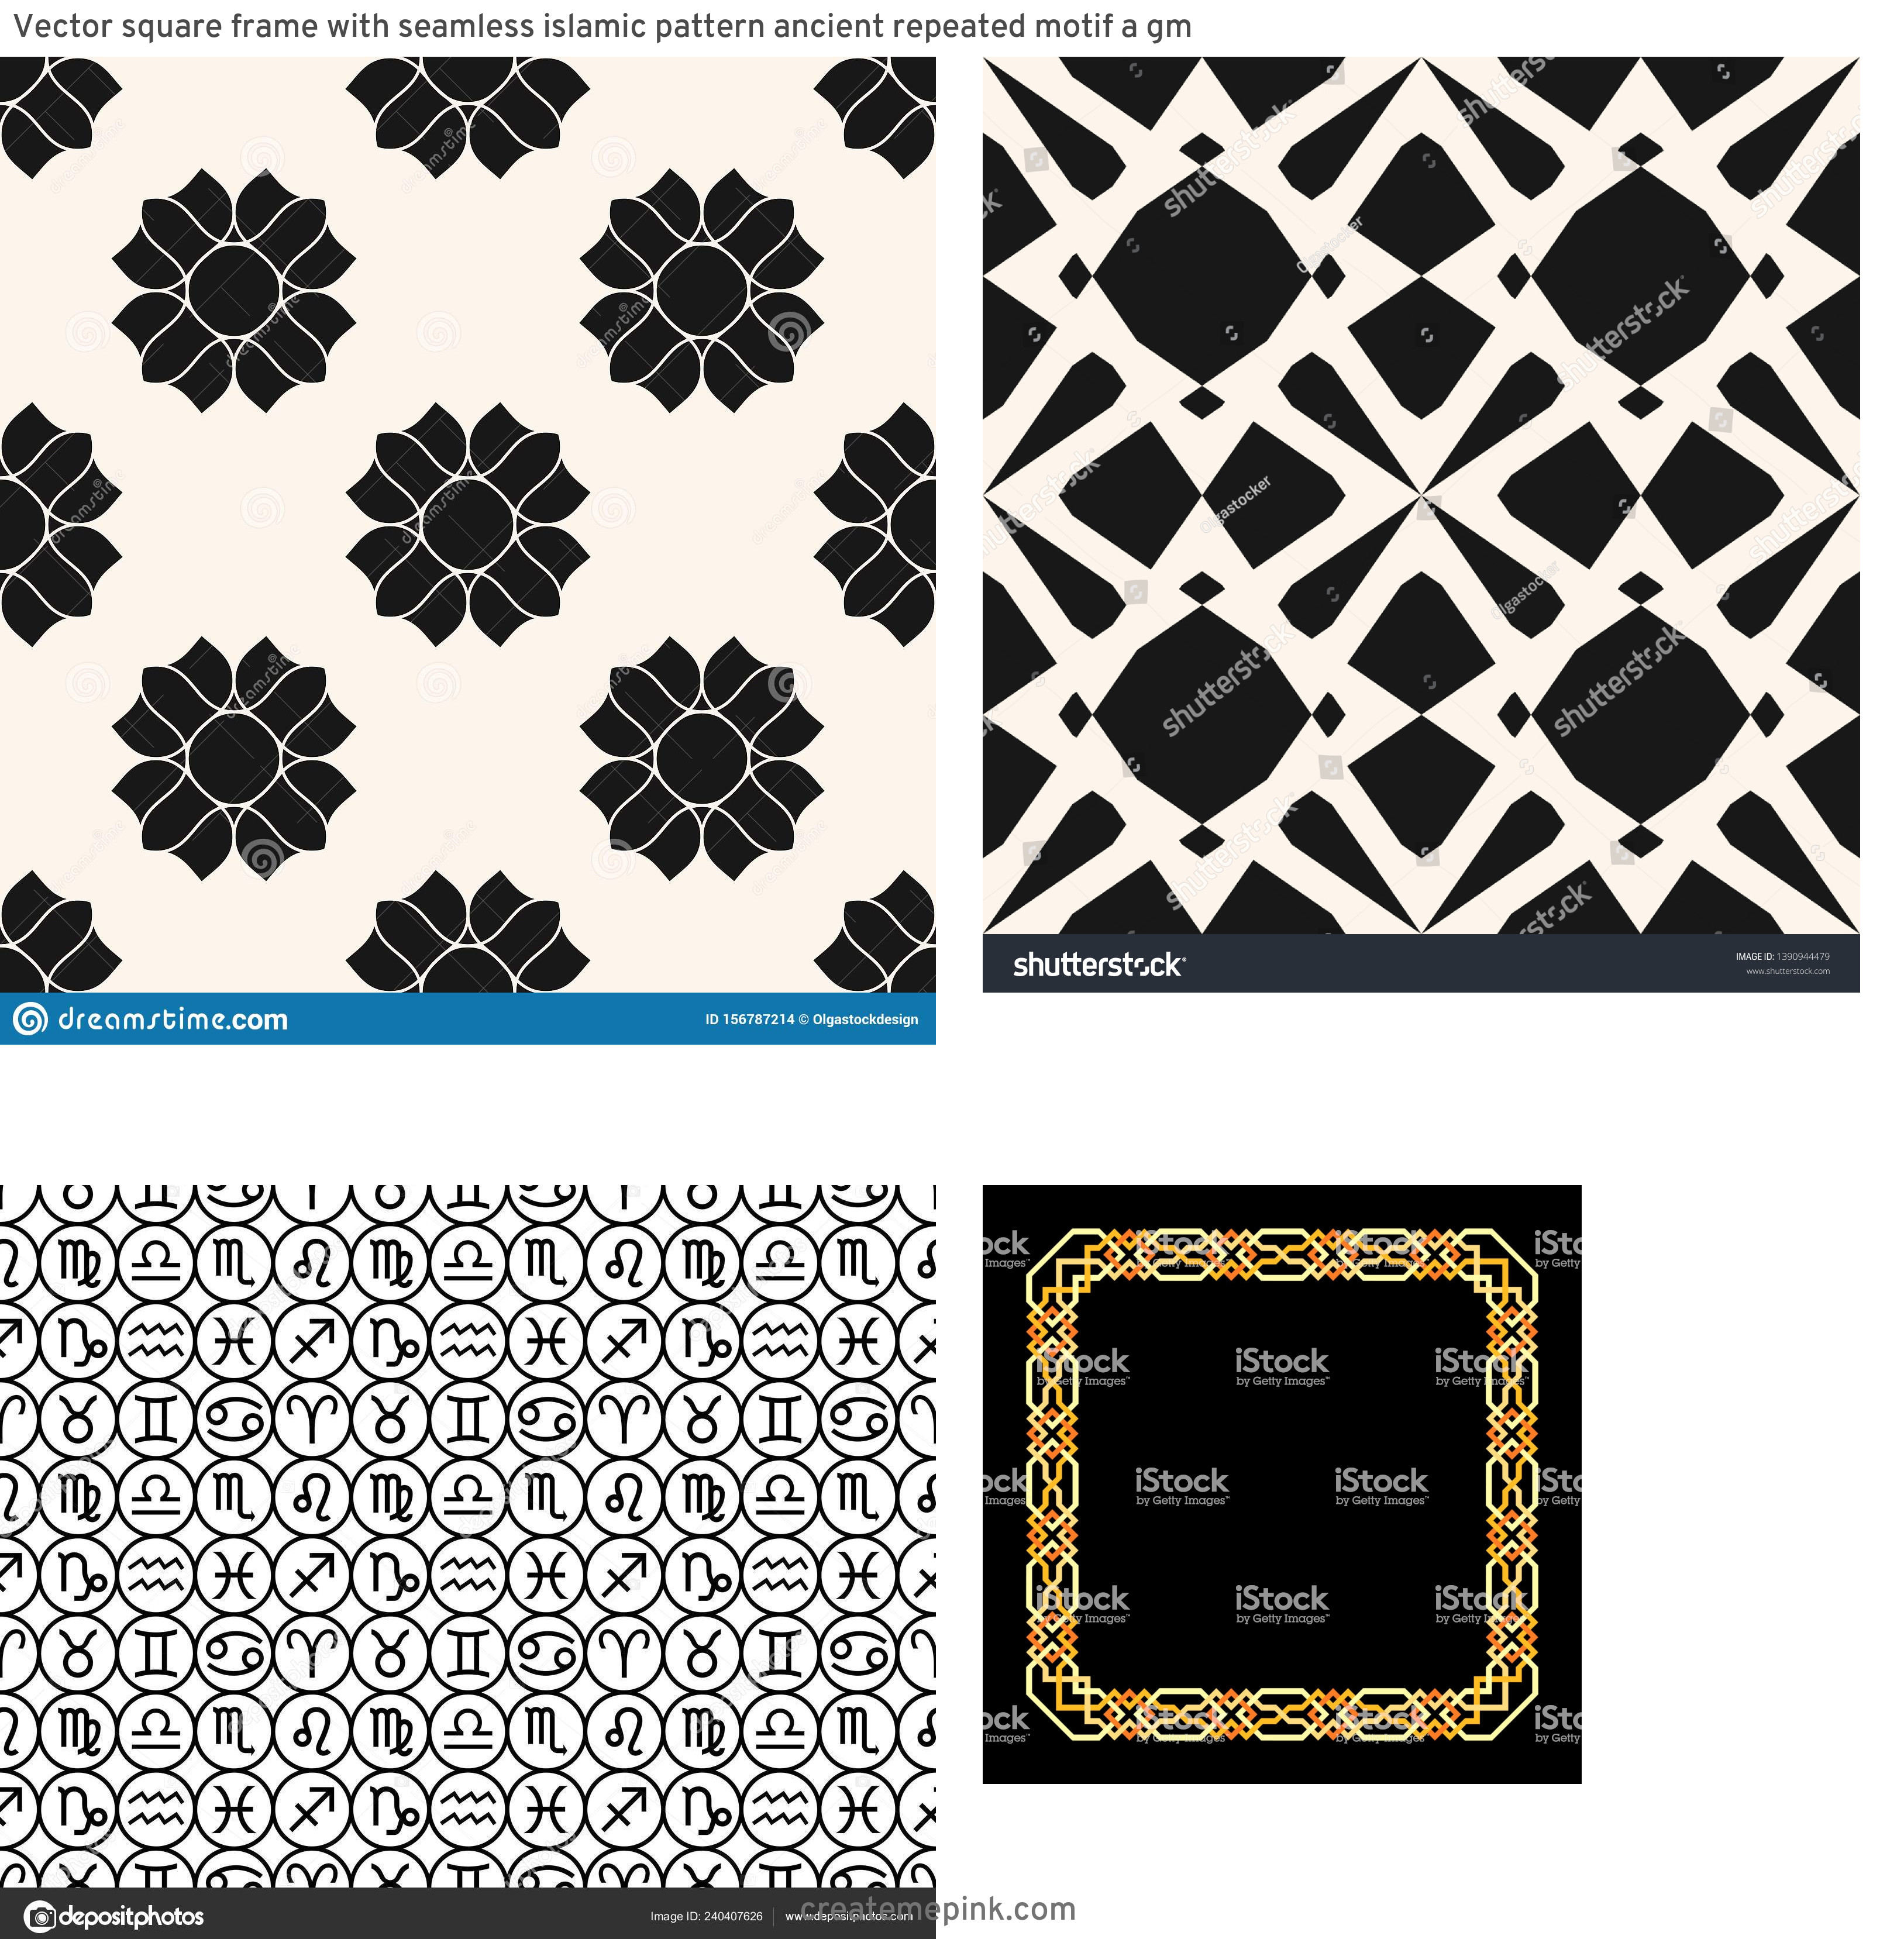 Simple Black Decorative Vector Patterns: Vector Square Frame With Seamless Islamic Pattern Ancient Repeated Motif A Gm